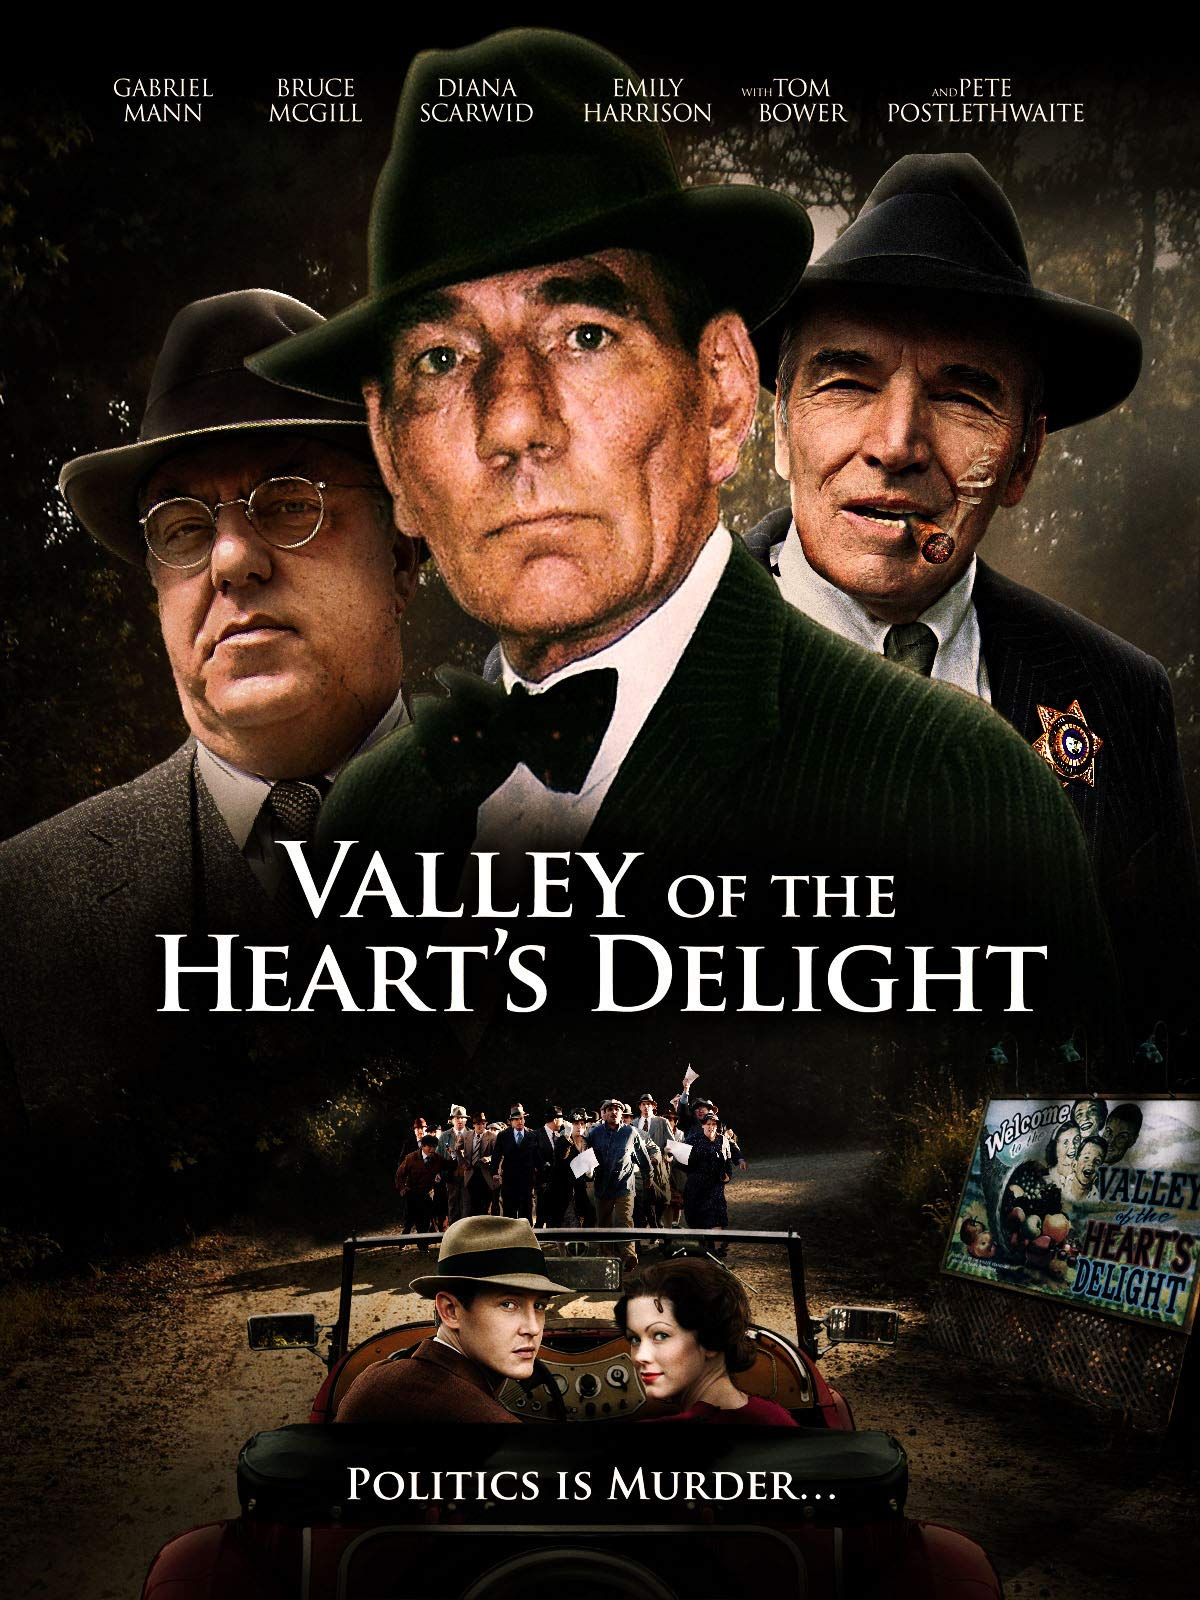 Valley of the Heart's Delight (2005) on Amazon Prime Video UK